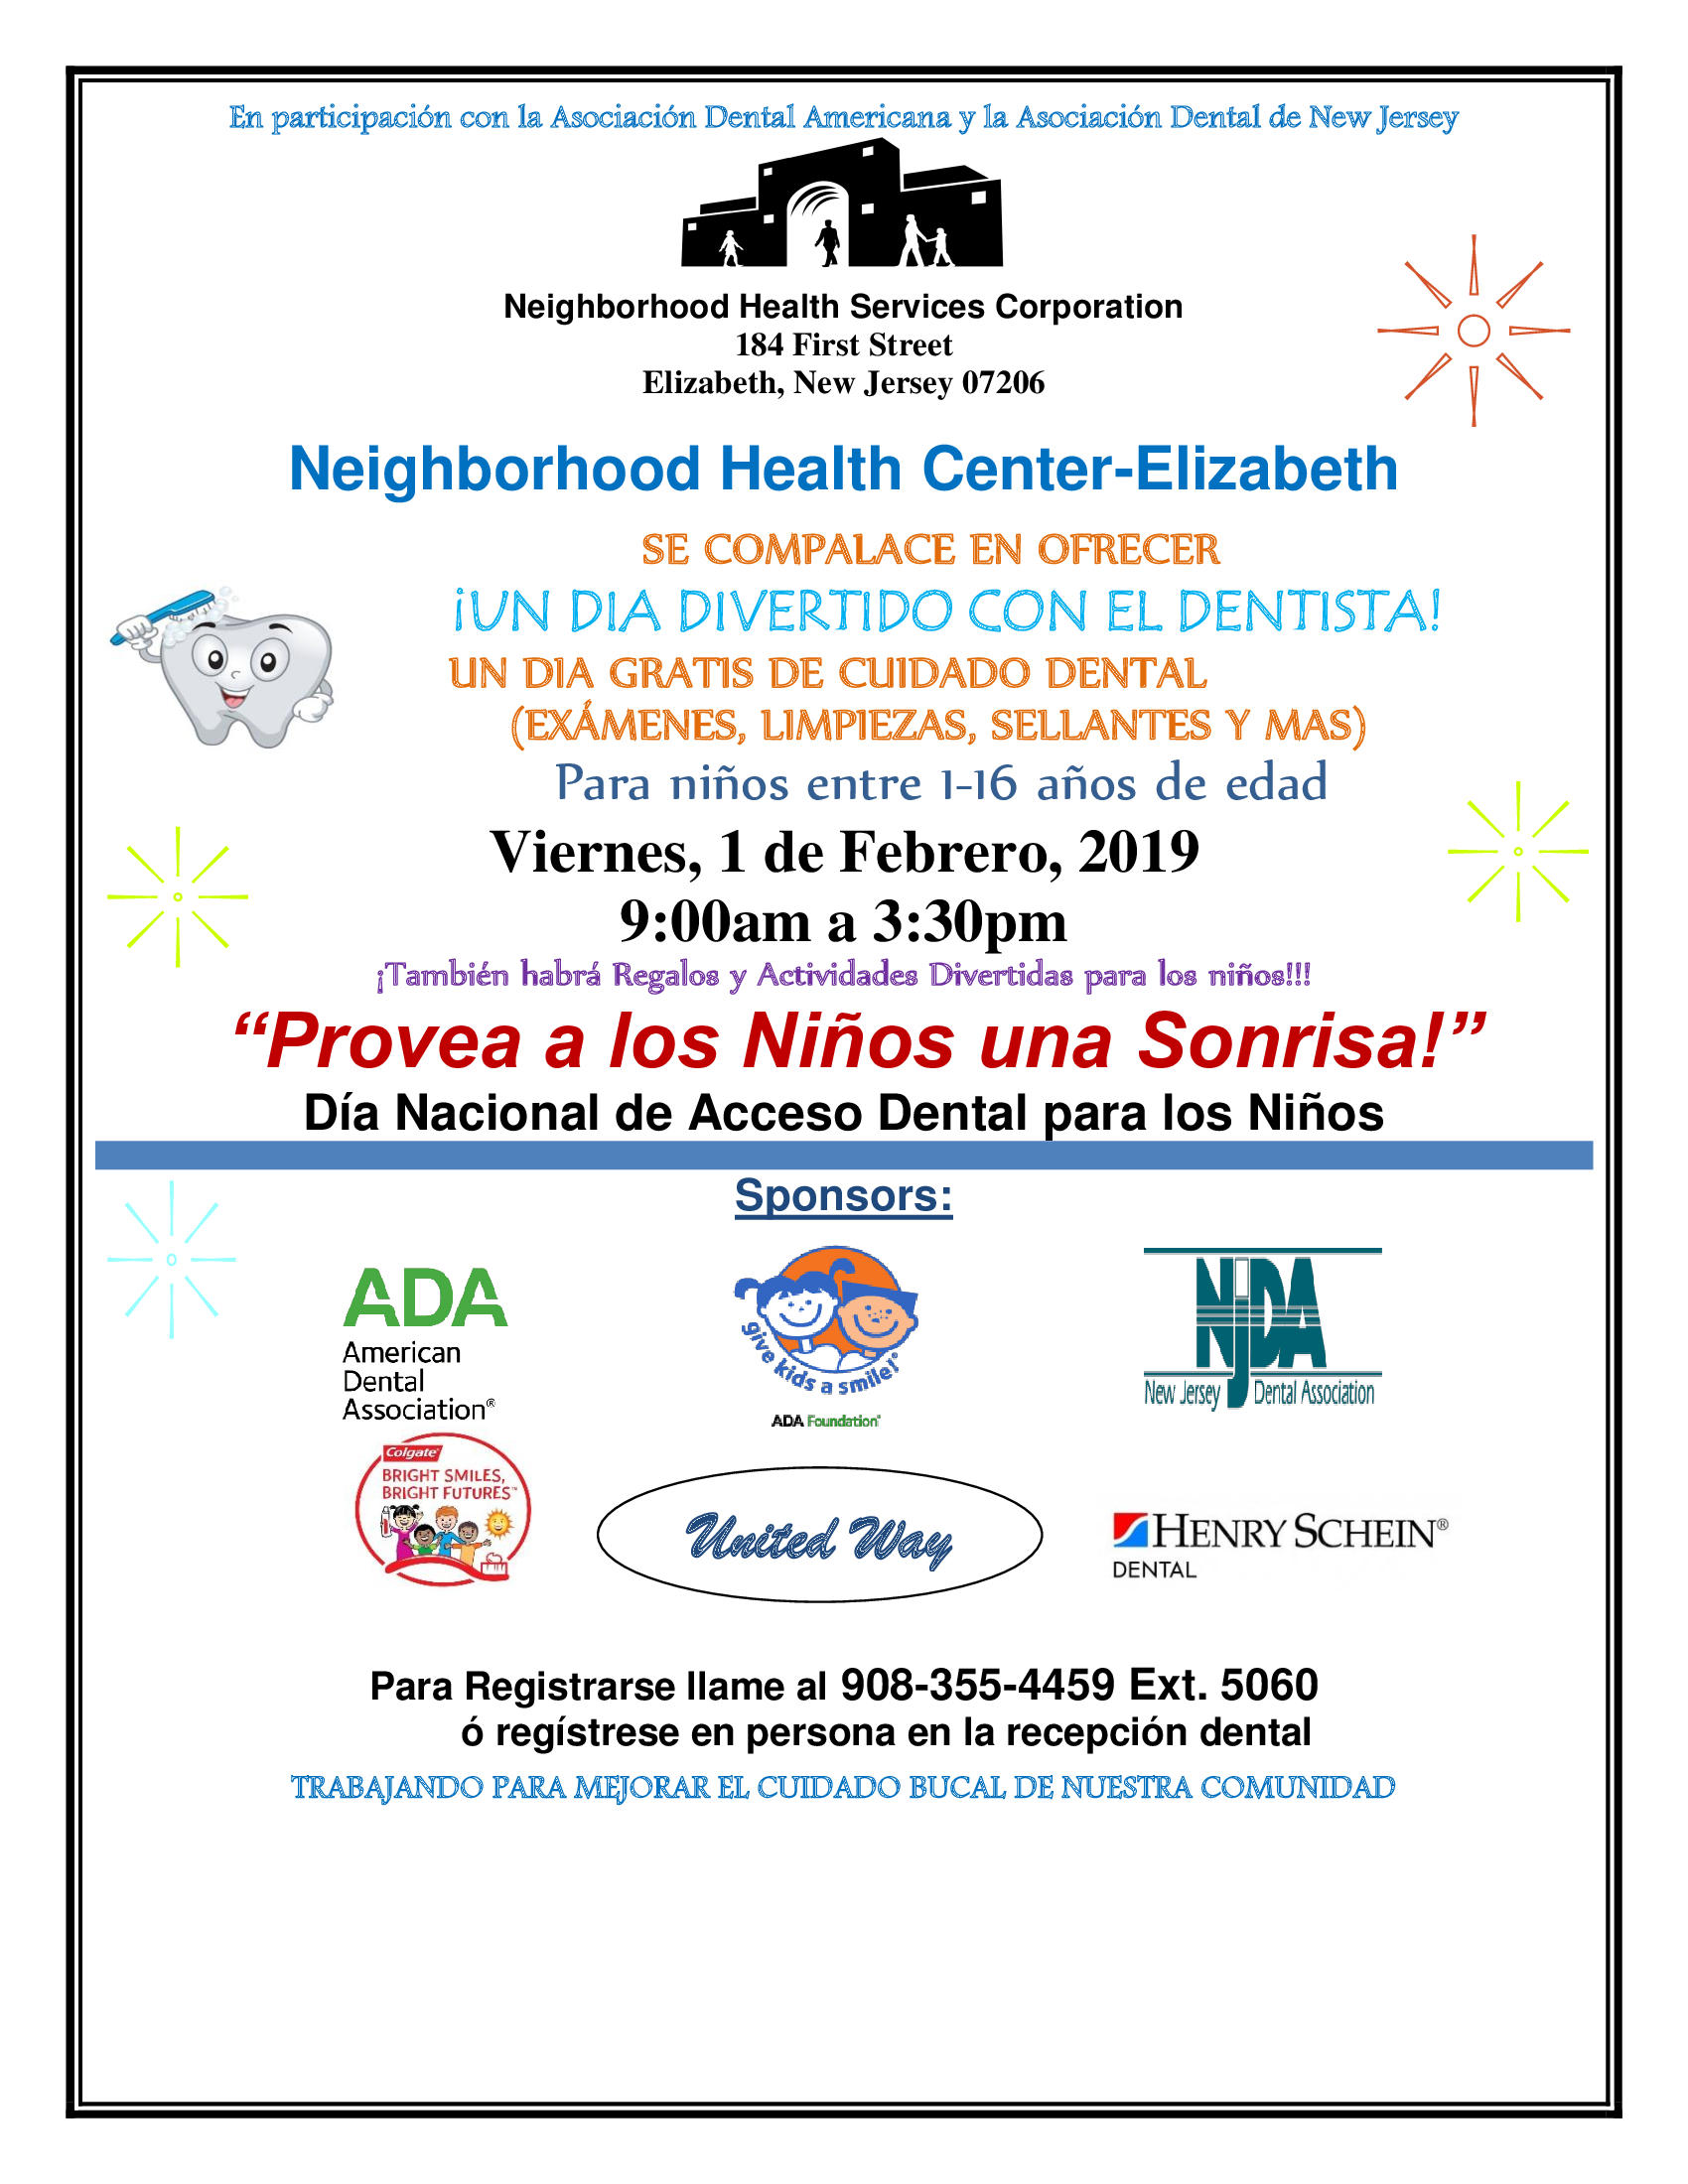 GKAS-2019-Eliz-Spanish-Flyer.jpeg